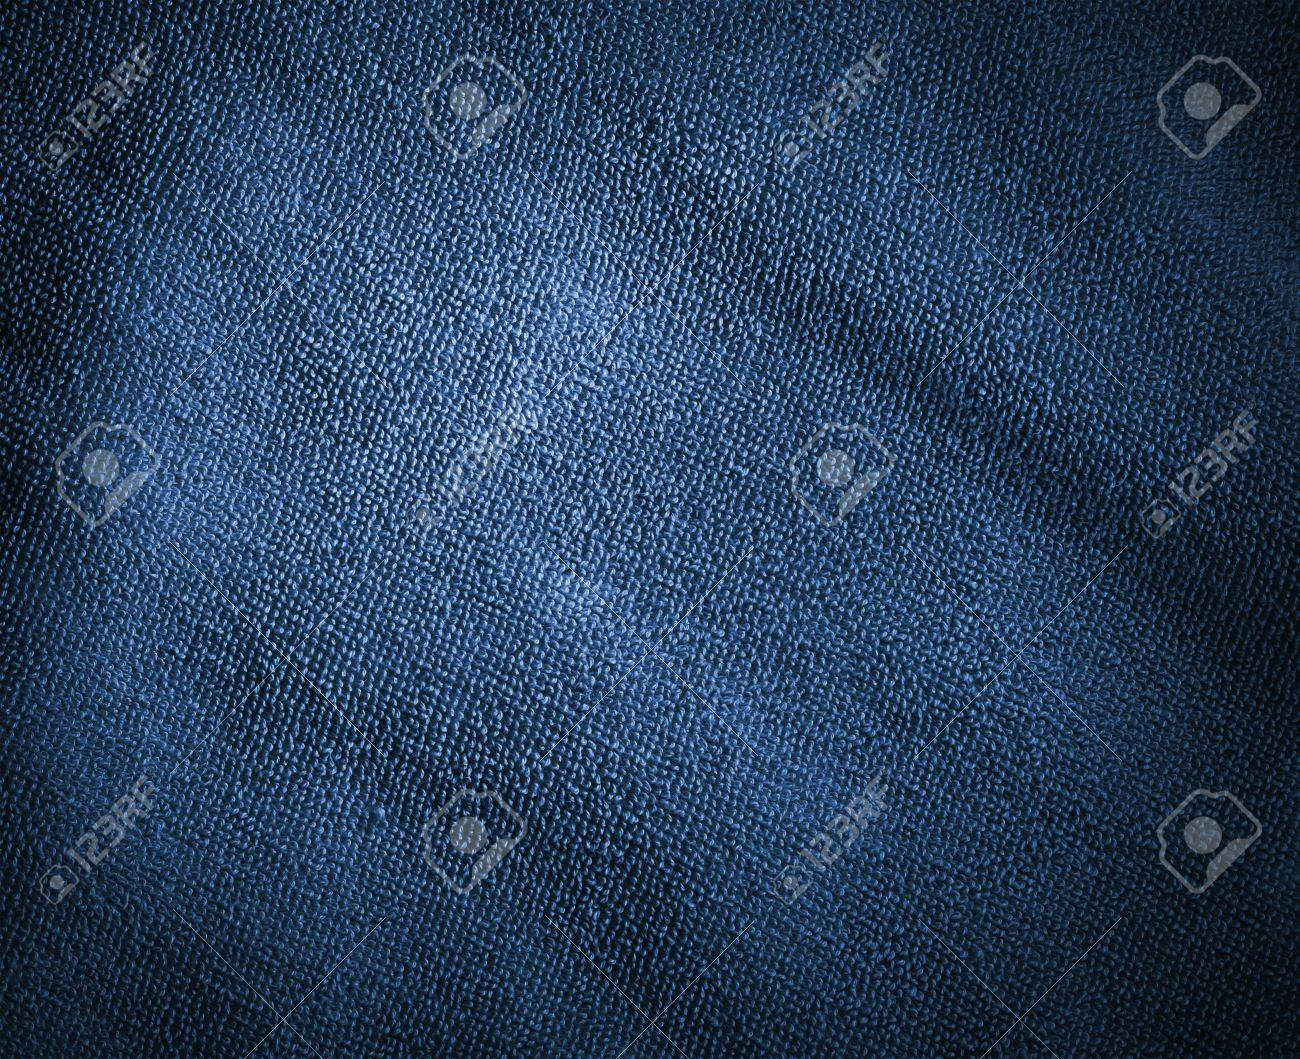 blue blanket texture. Texture Of Blue Blanket Background Stock Photo - 15191389 S